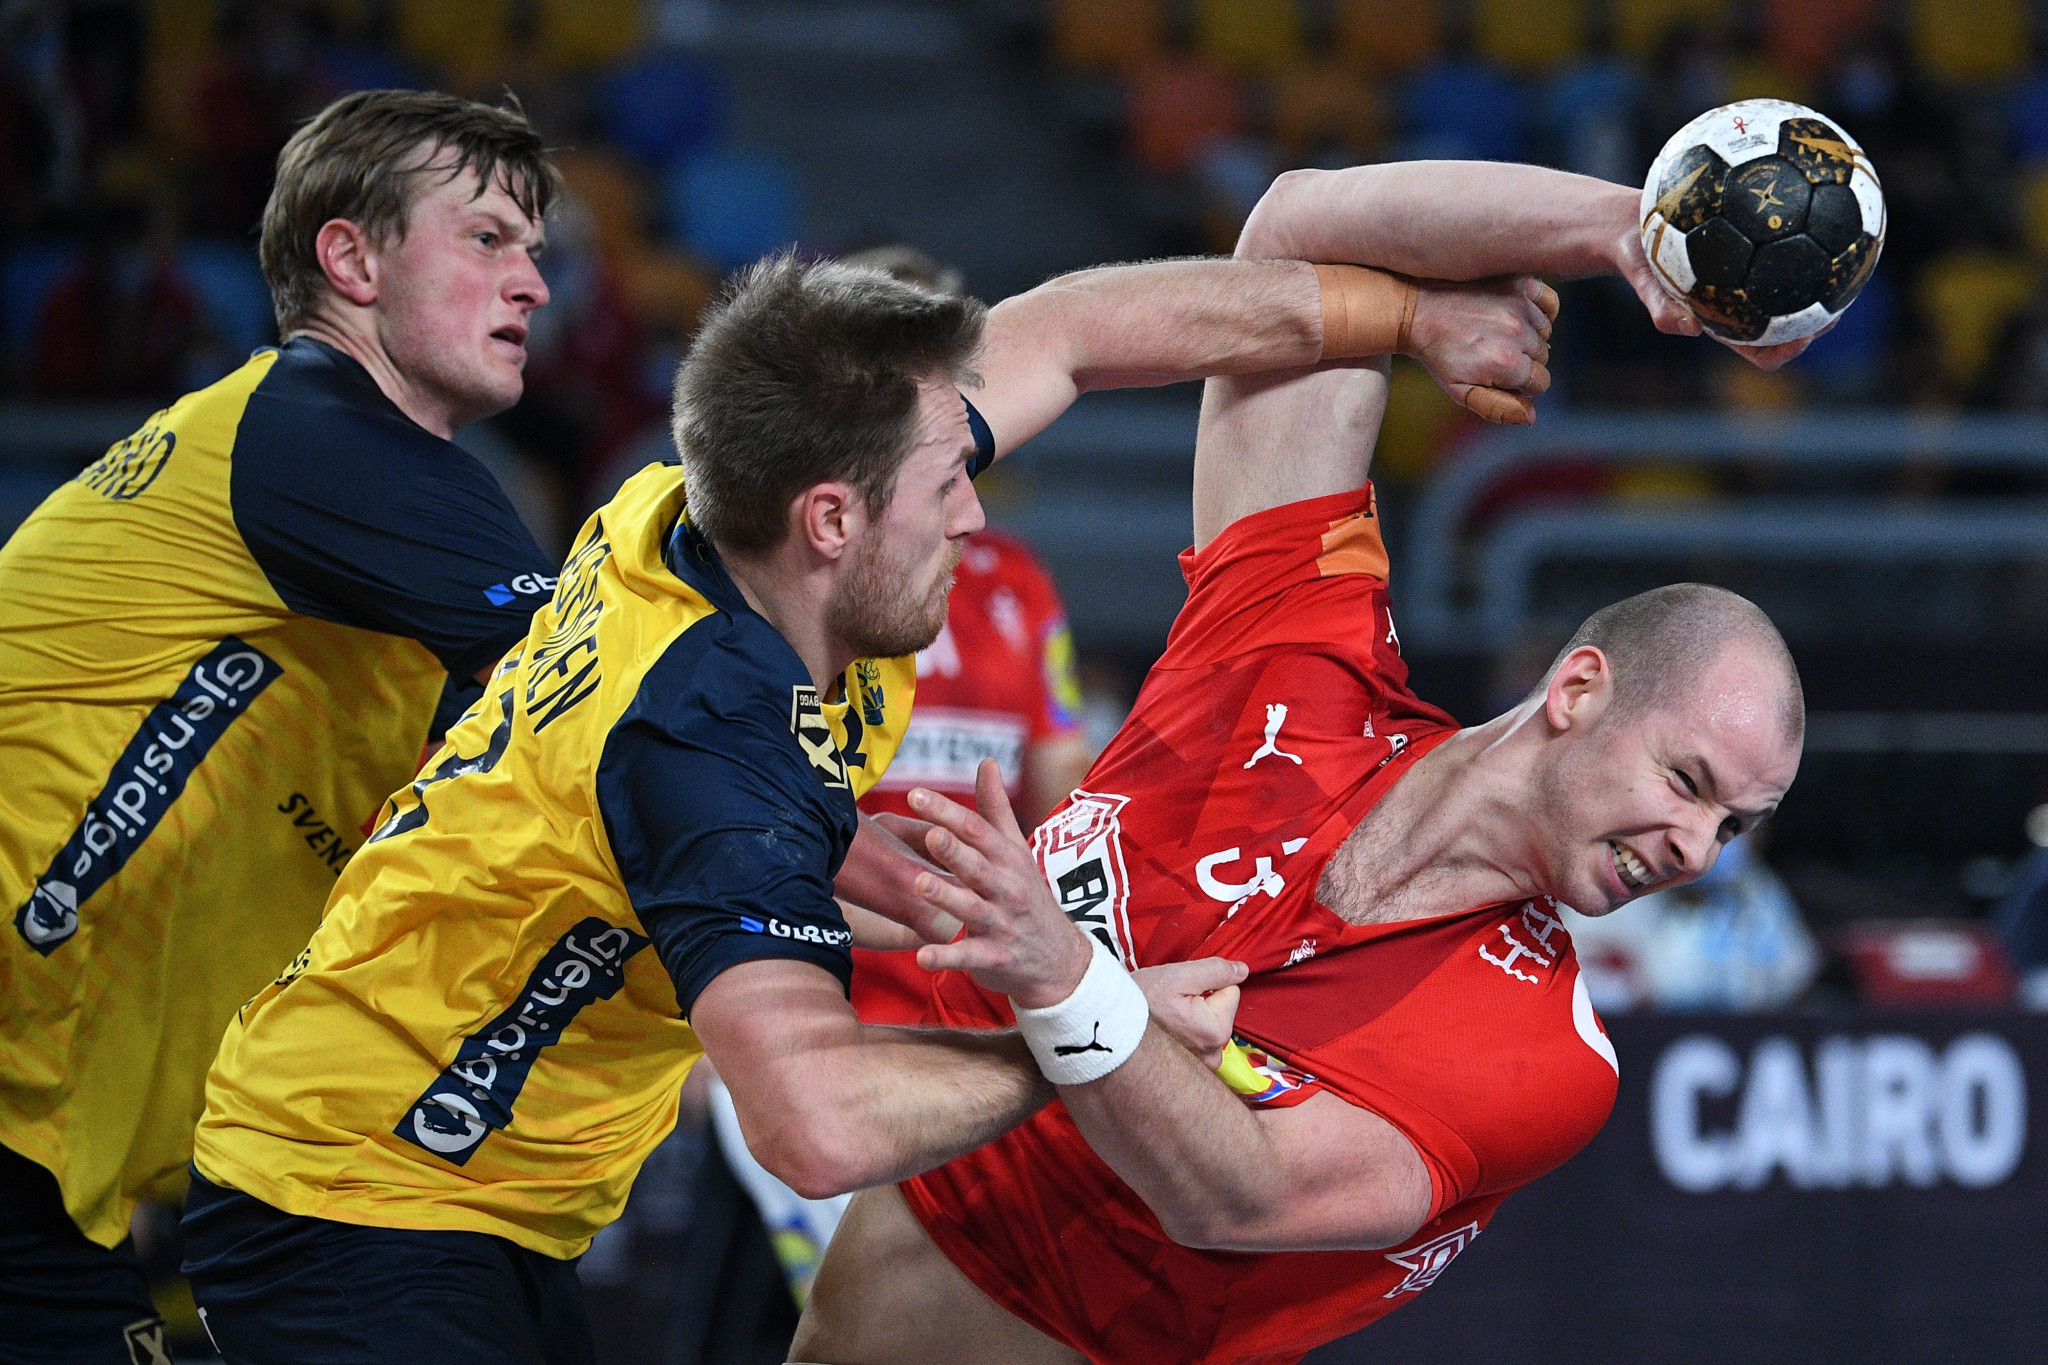 Denmark (in red) won all nine matches that they played at this year's World Men's Handball Championship ©Getty Images